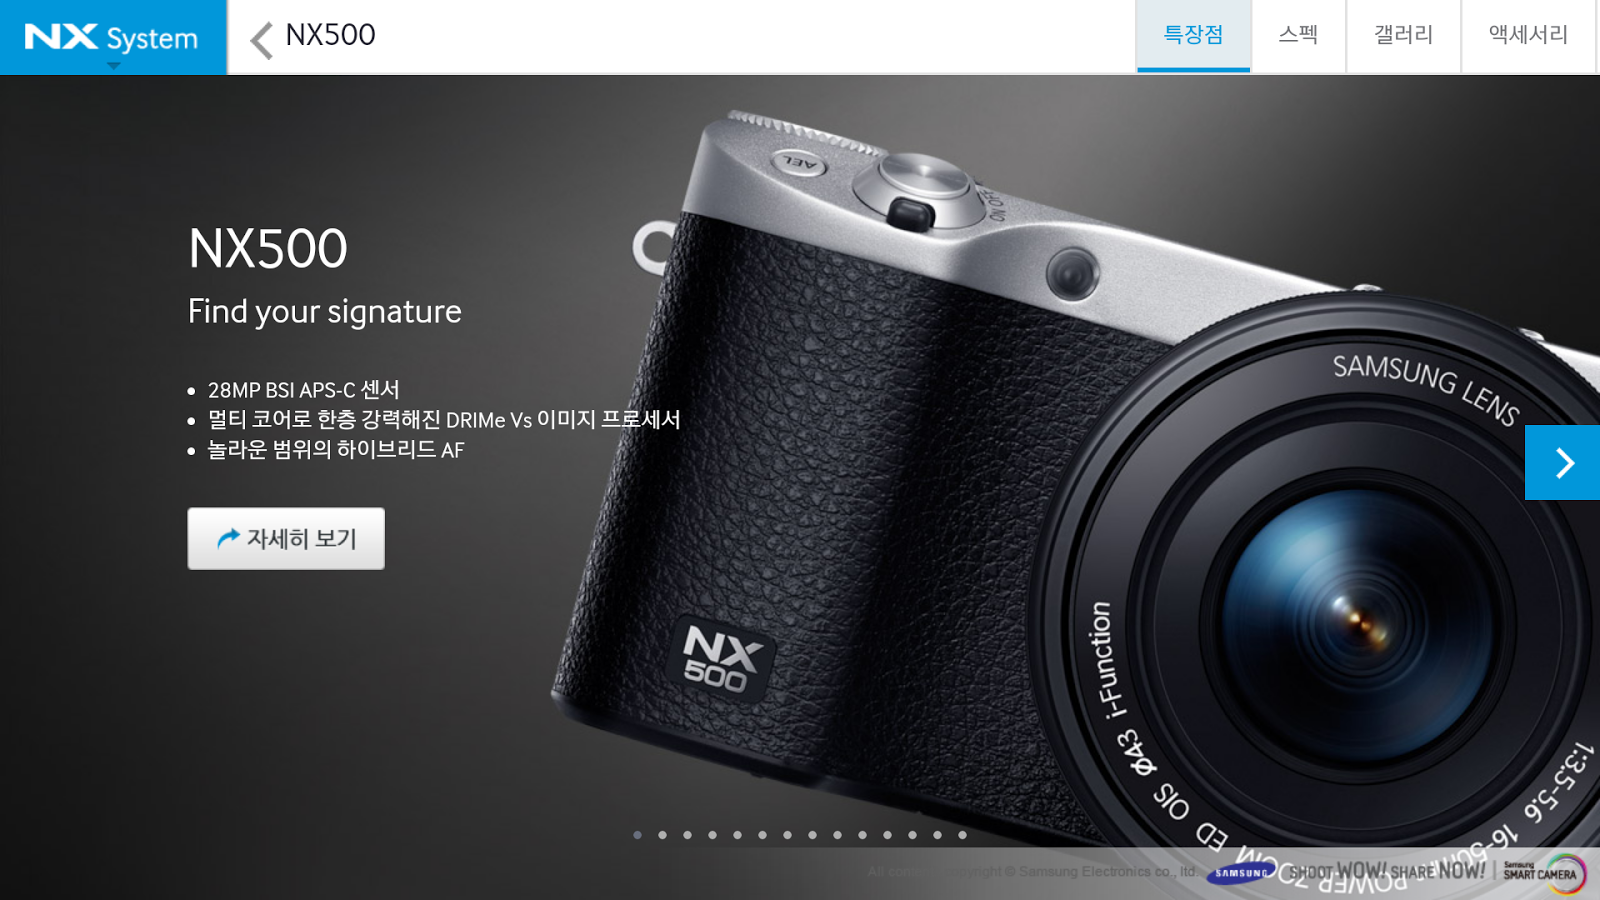 Samsung SMART CAMERA NX (KOR) - Android Apps on Google Play